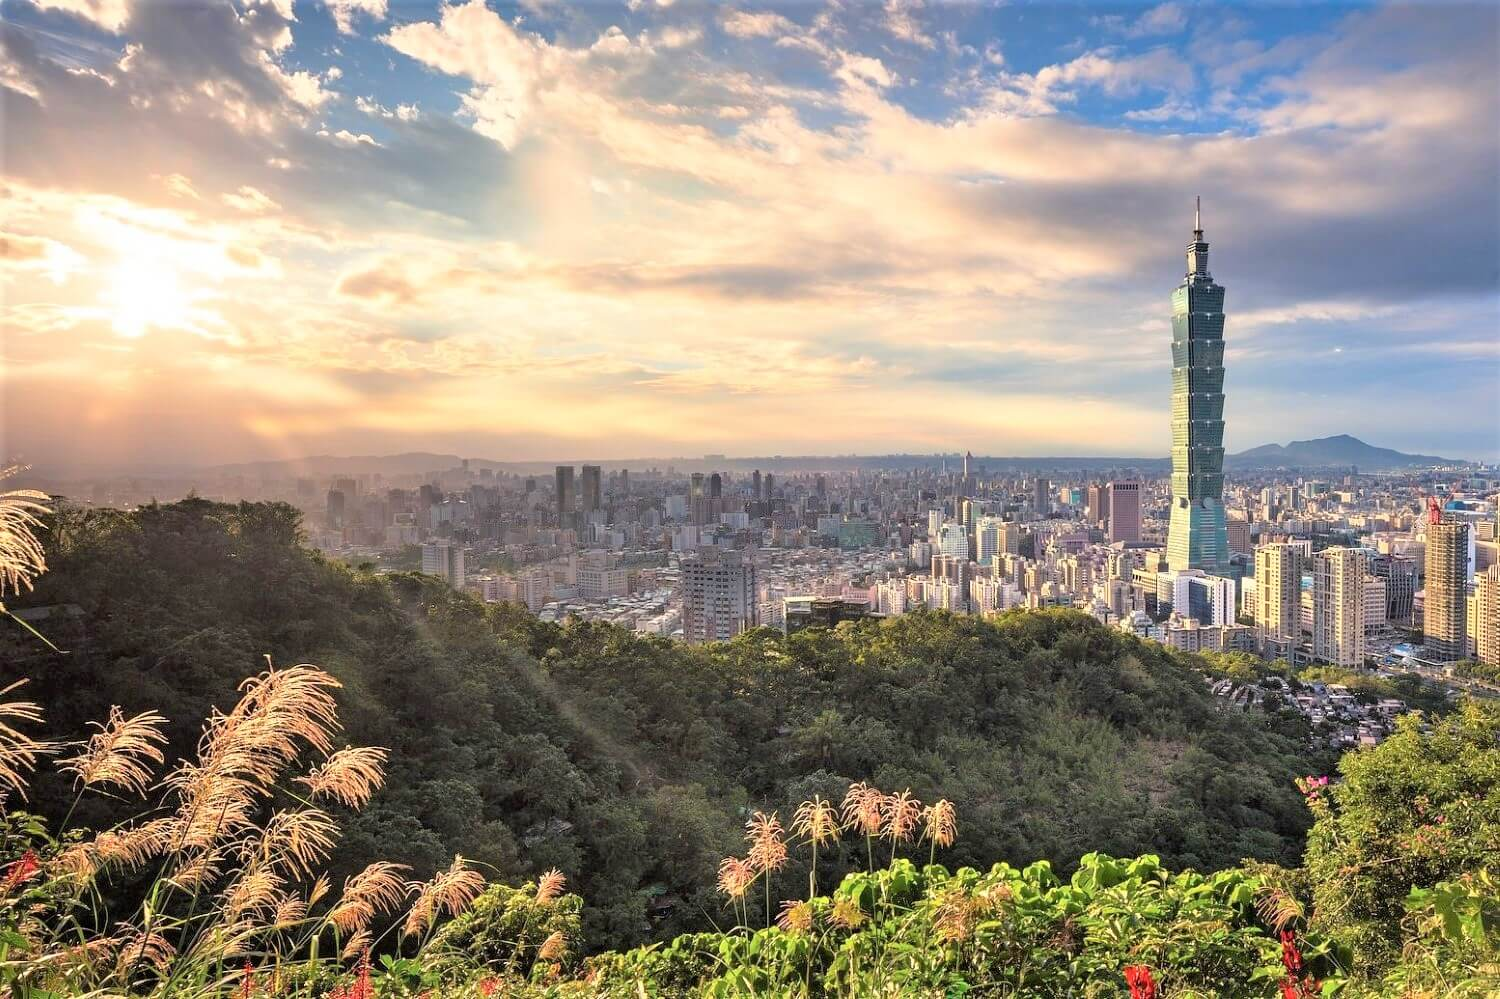 The Travel Guide of the Taipei 101 bamboo tower